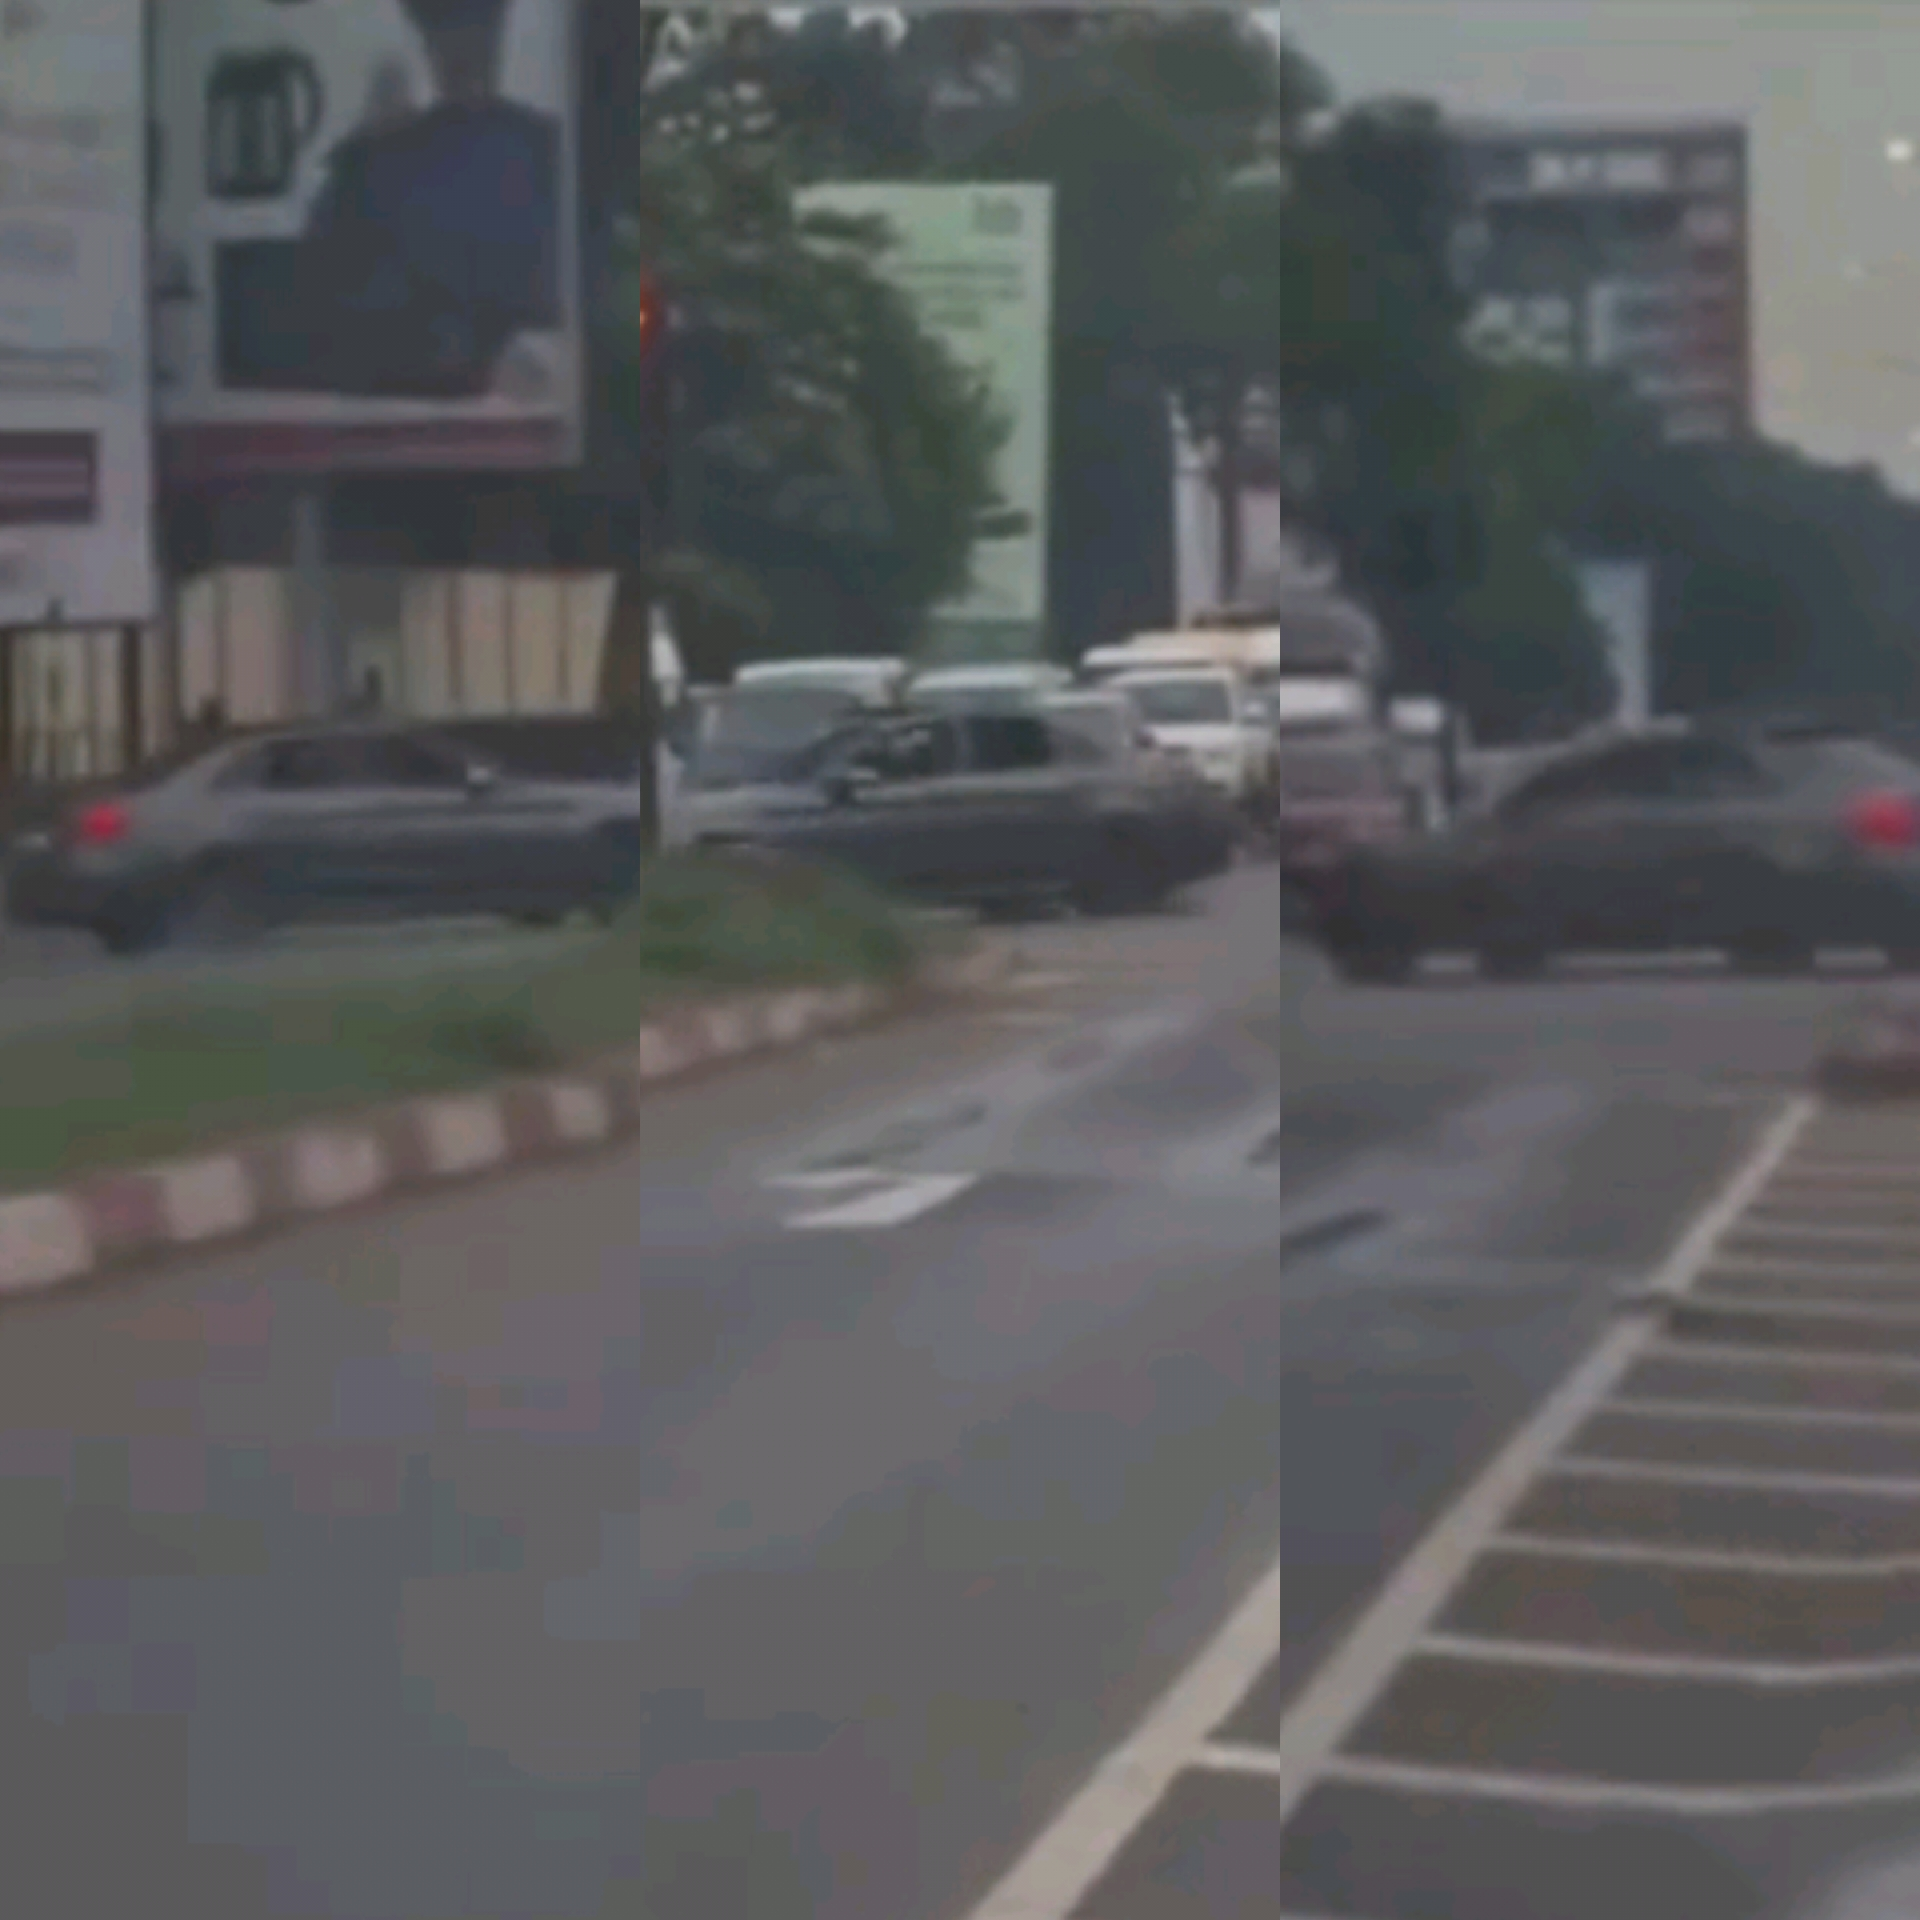 Watch Ghanaian Driver Display Fast And Furious Skills In Viral Video